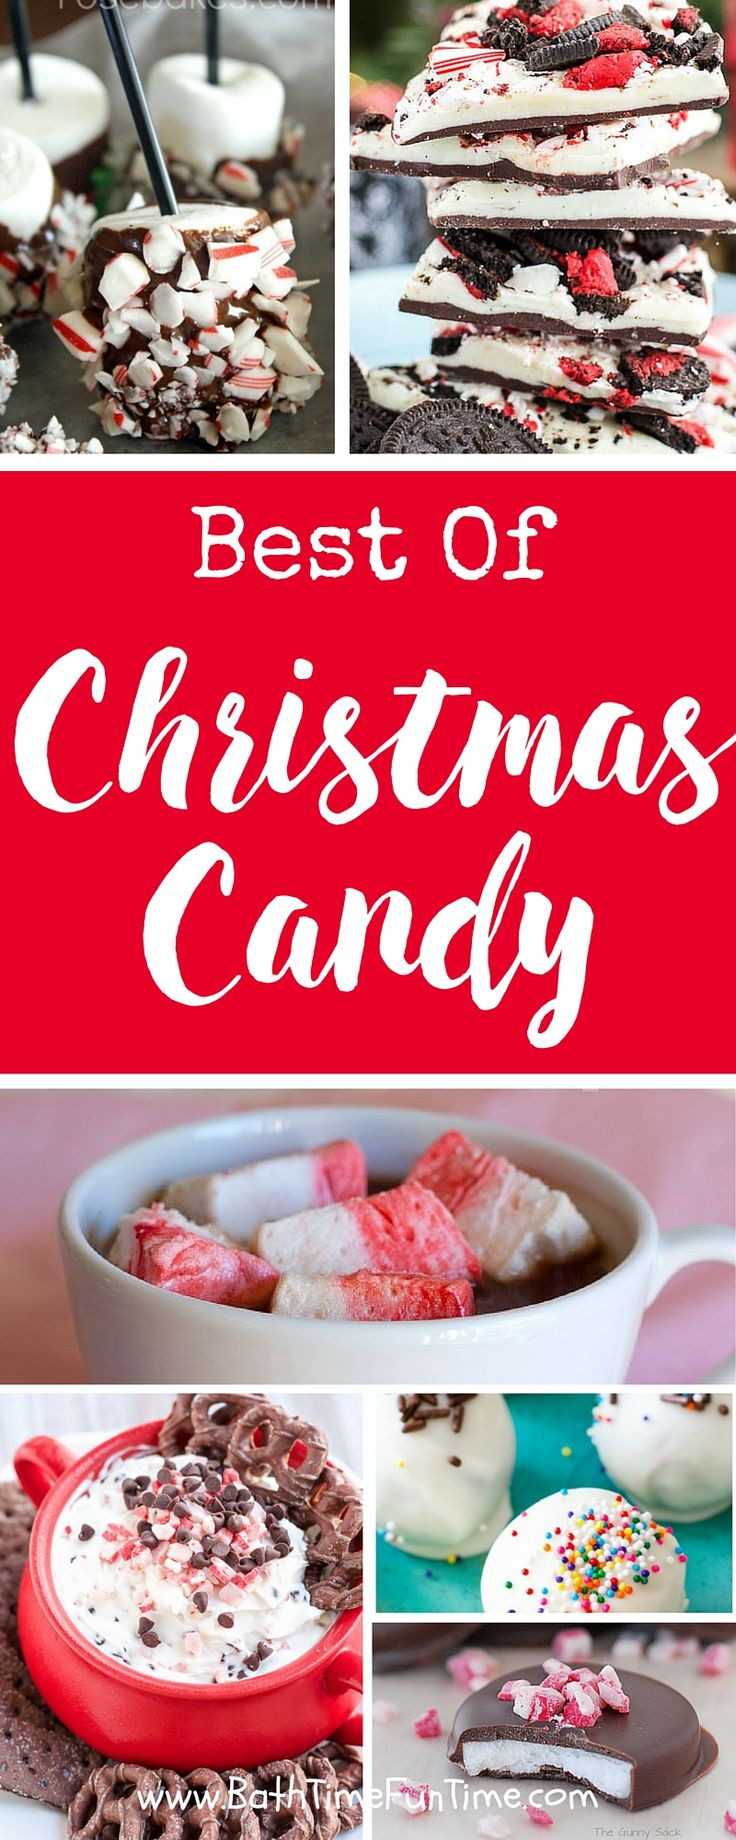 Popular Christmas Candy  1000 images about Best of BathTimeFunTime on